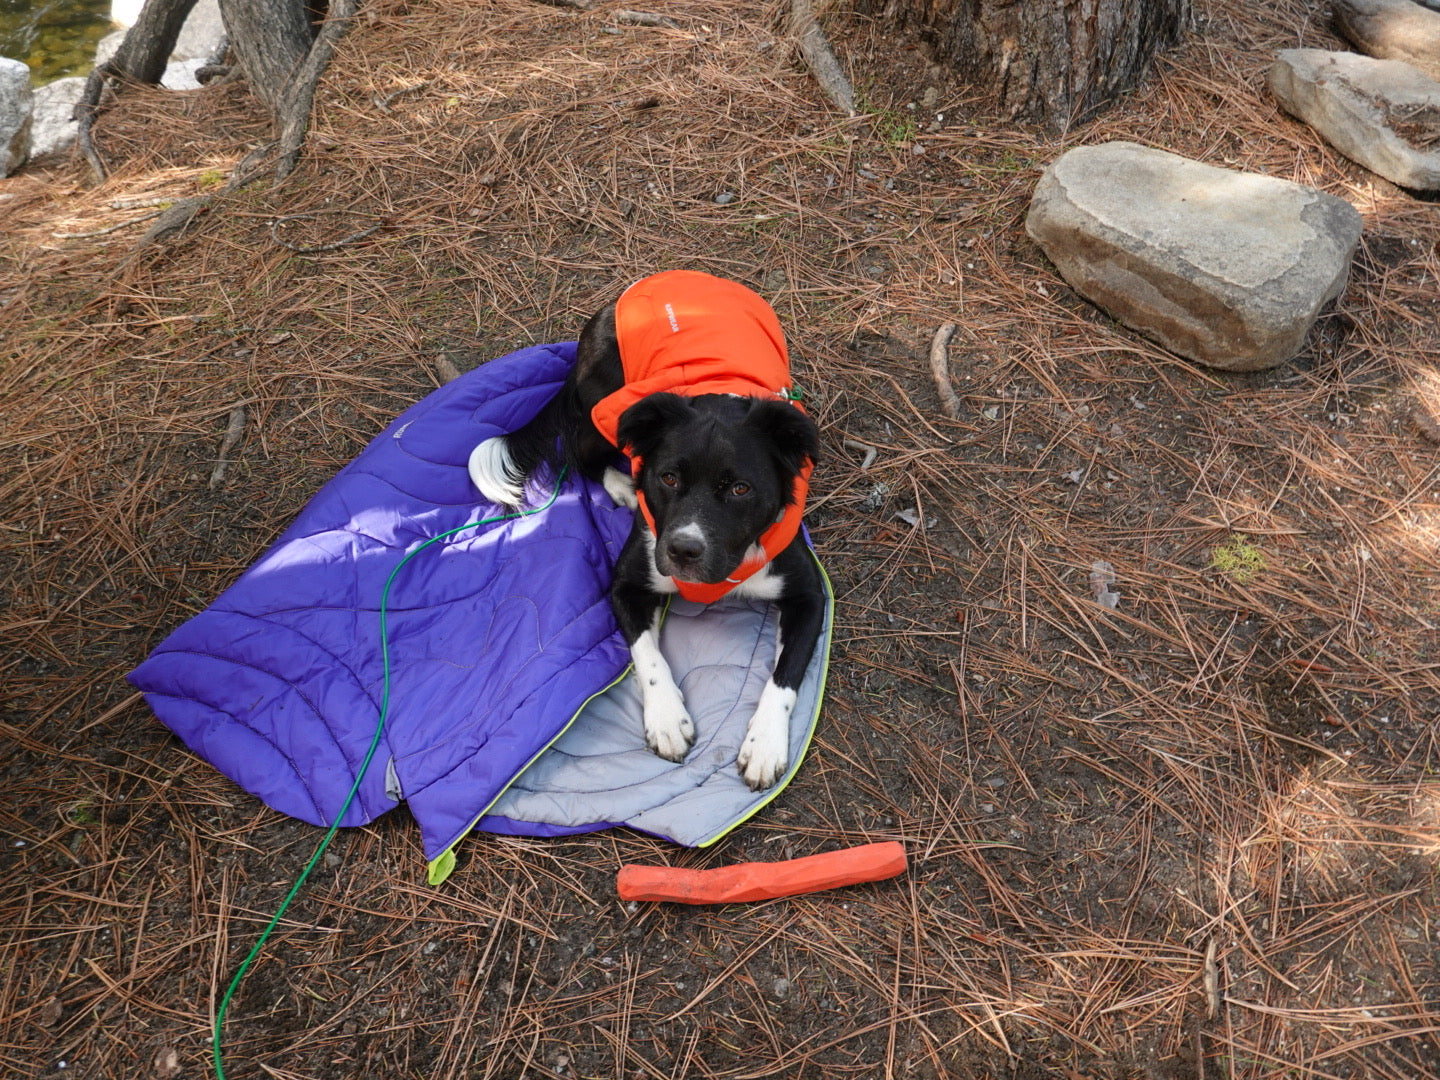 Jenny Bruso's dog on Highlands dog sleeping bag with gnawt-a-stick toy while camping.